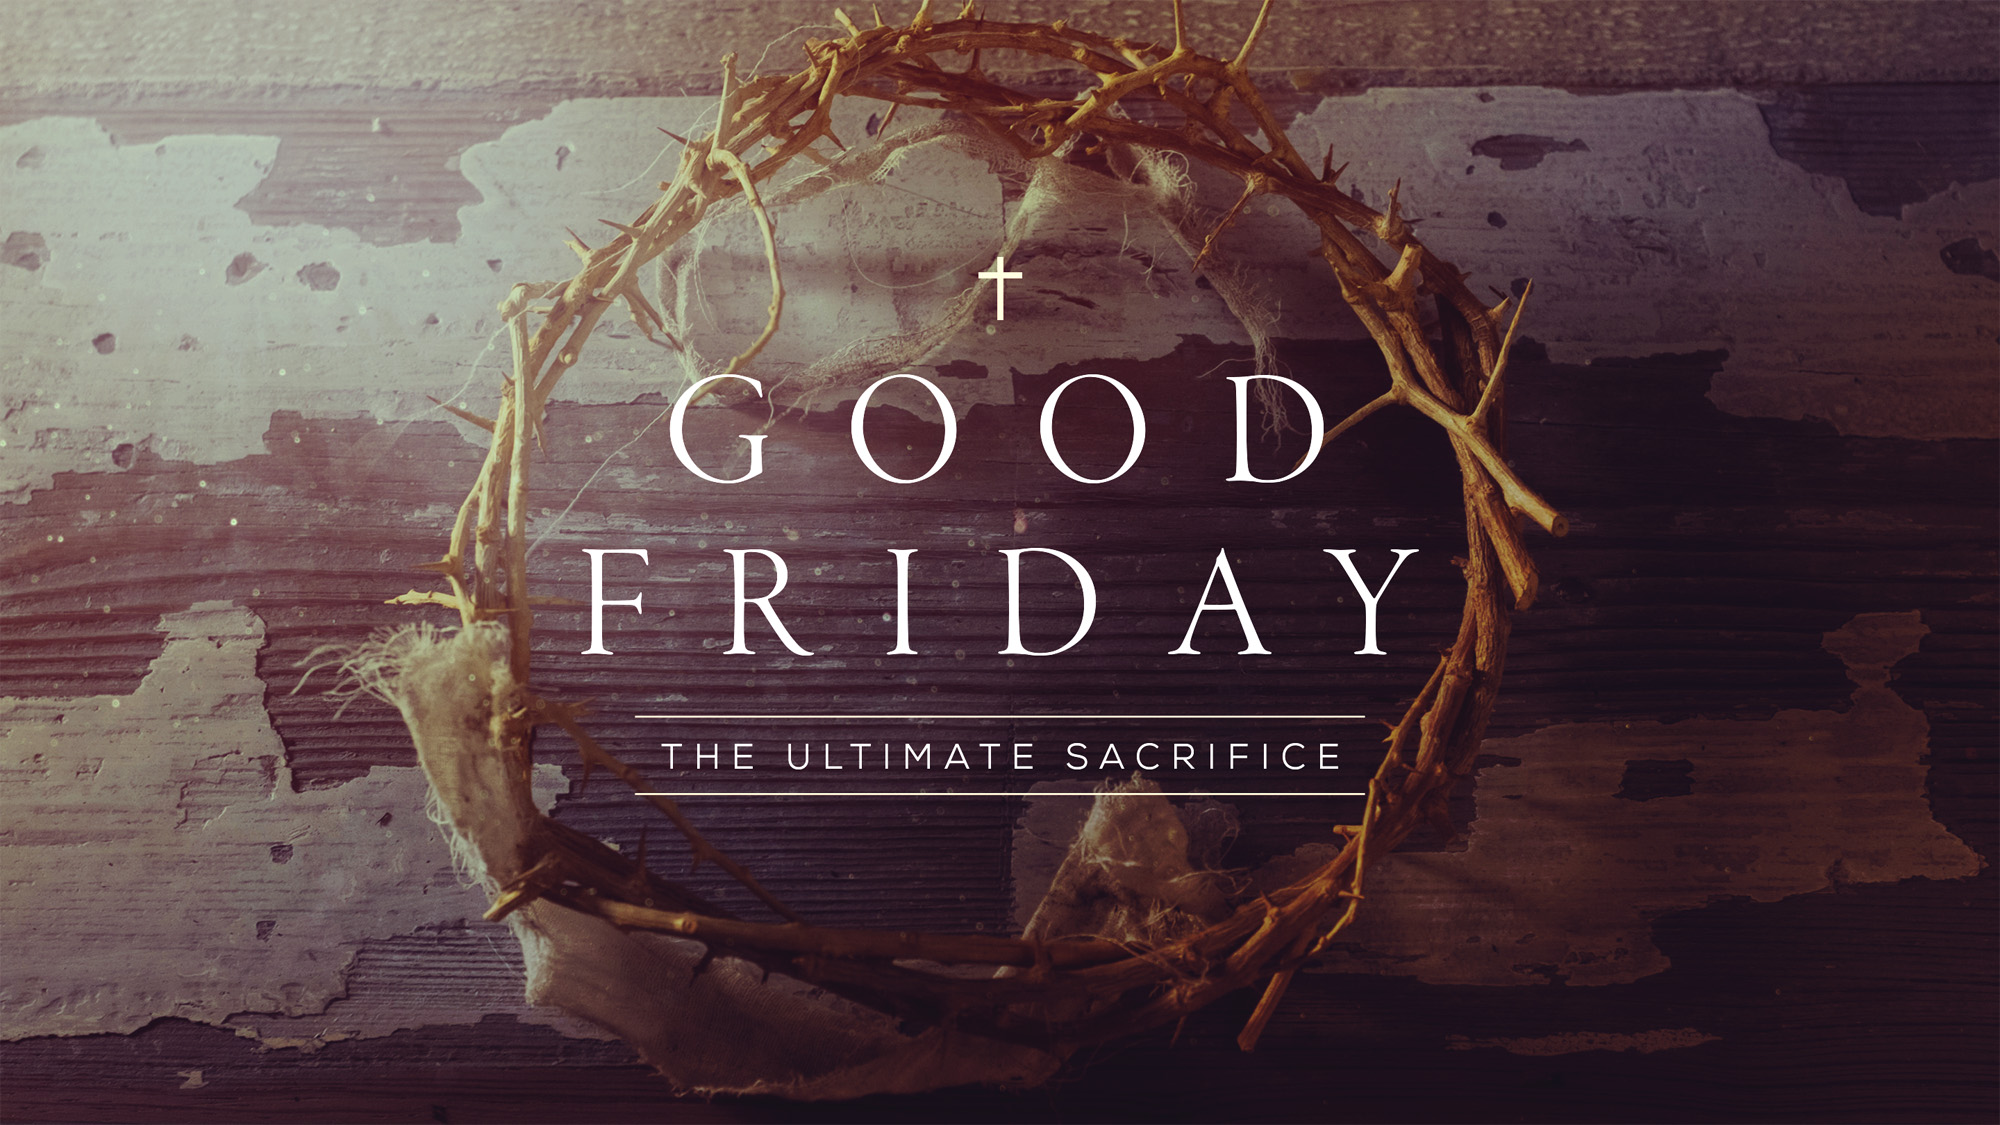 good friday jesus christ ultimate sacrifice crucifixion cross atonement hd wallpaper